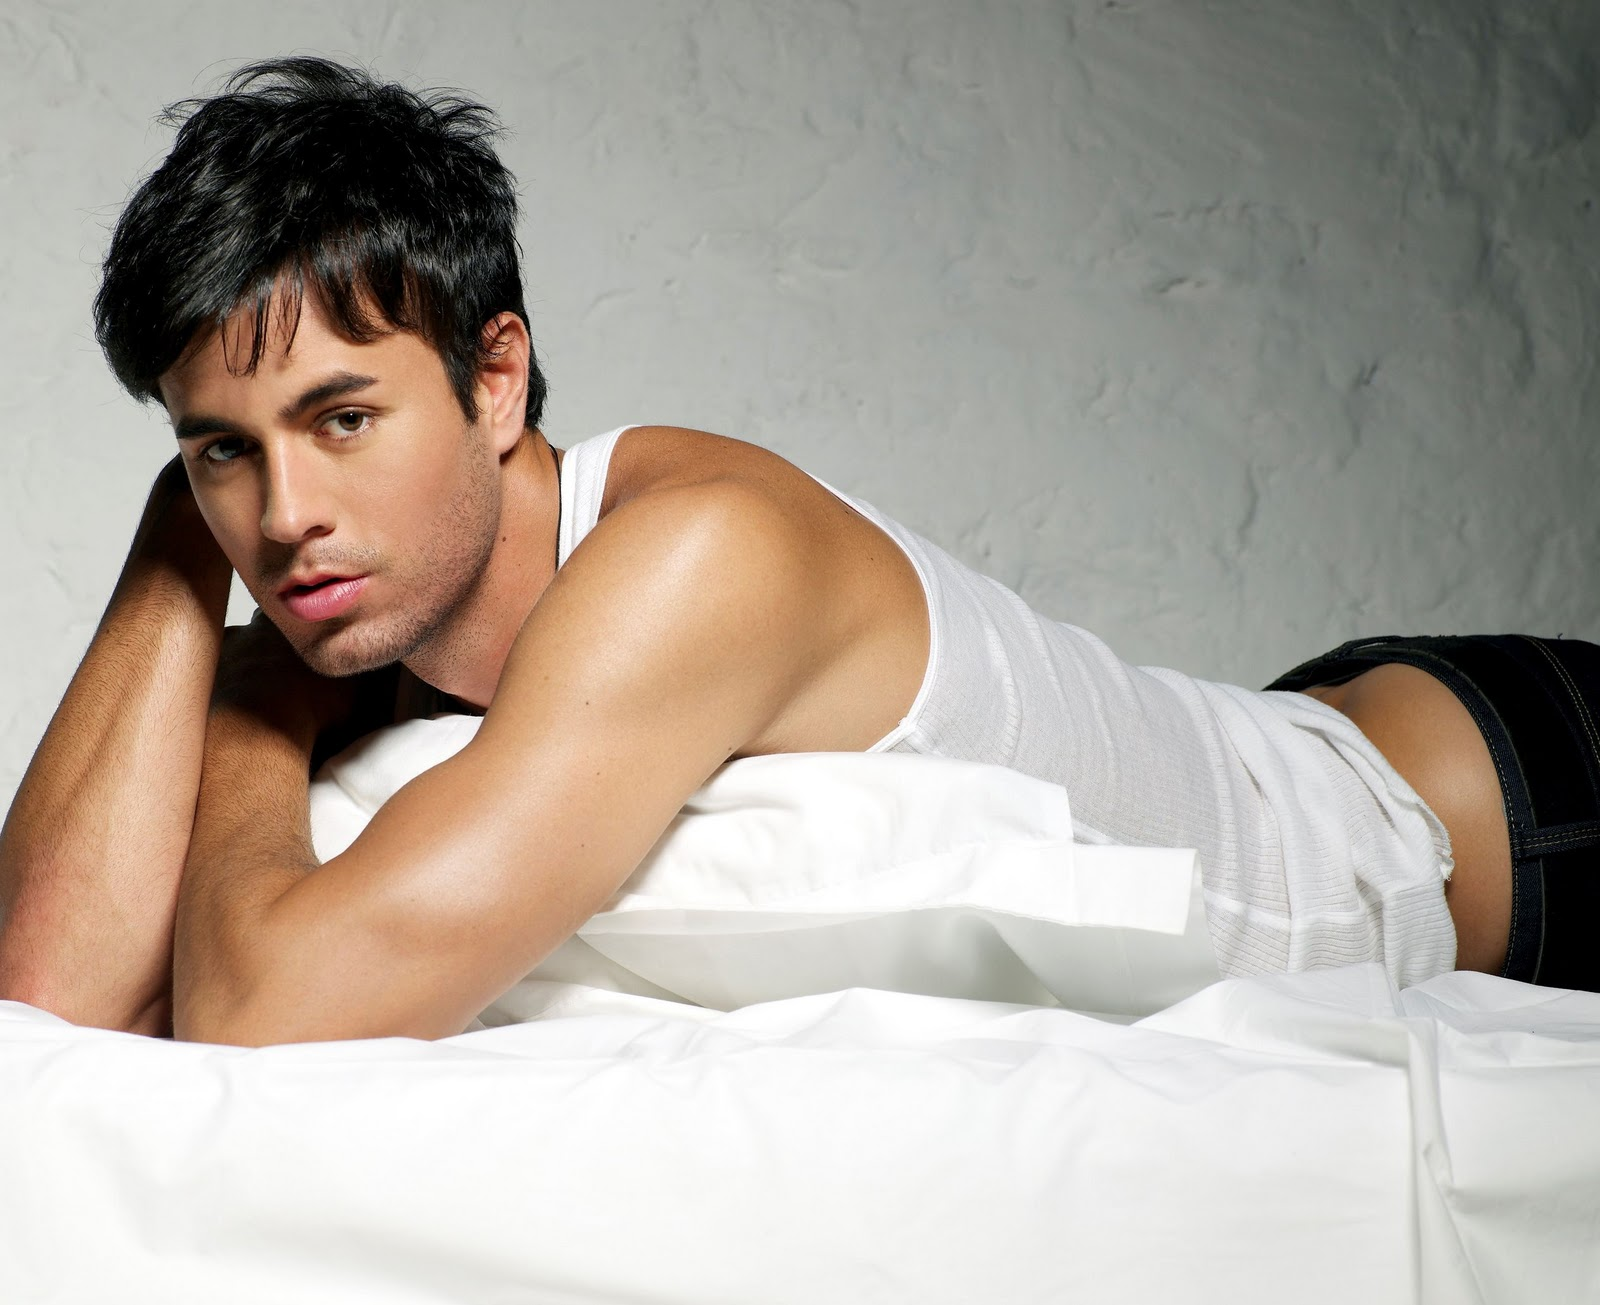 Cute Romantic Babies Wallpapers Fascinating Articles And Cool Stuff Hot Enrique Iglesias